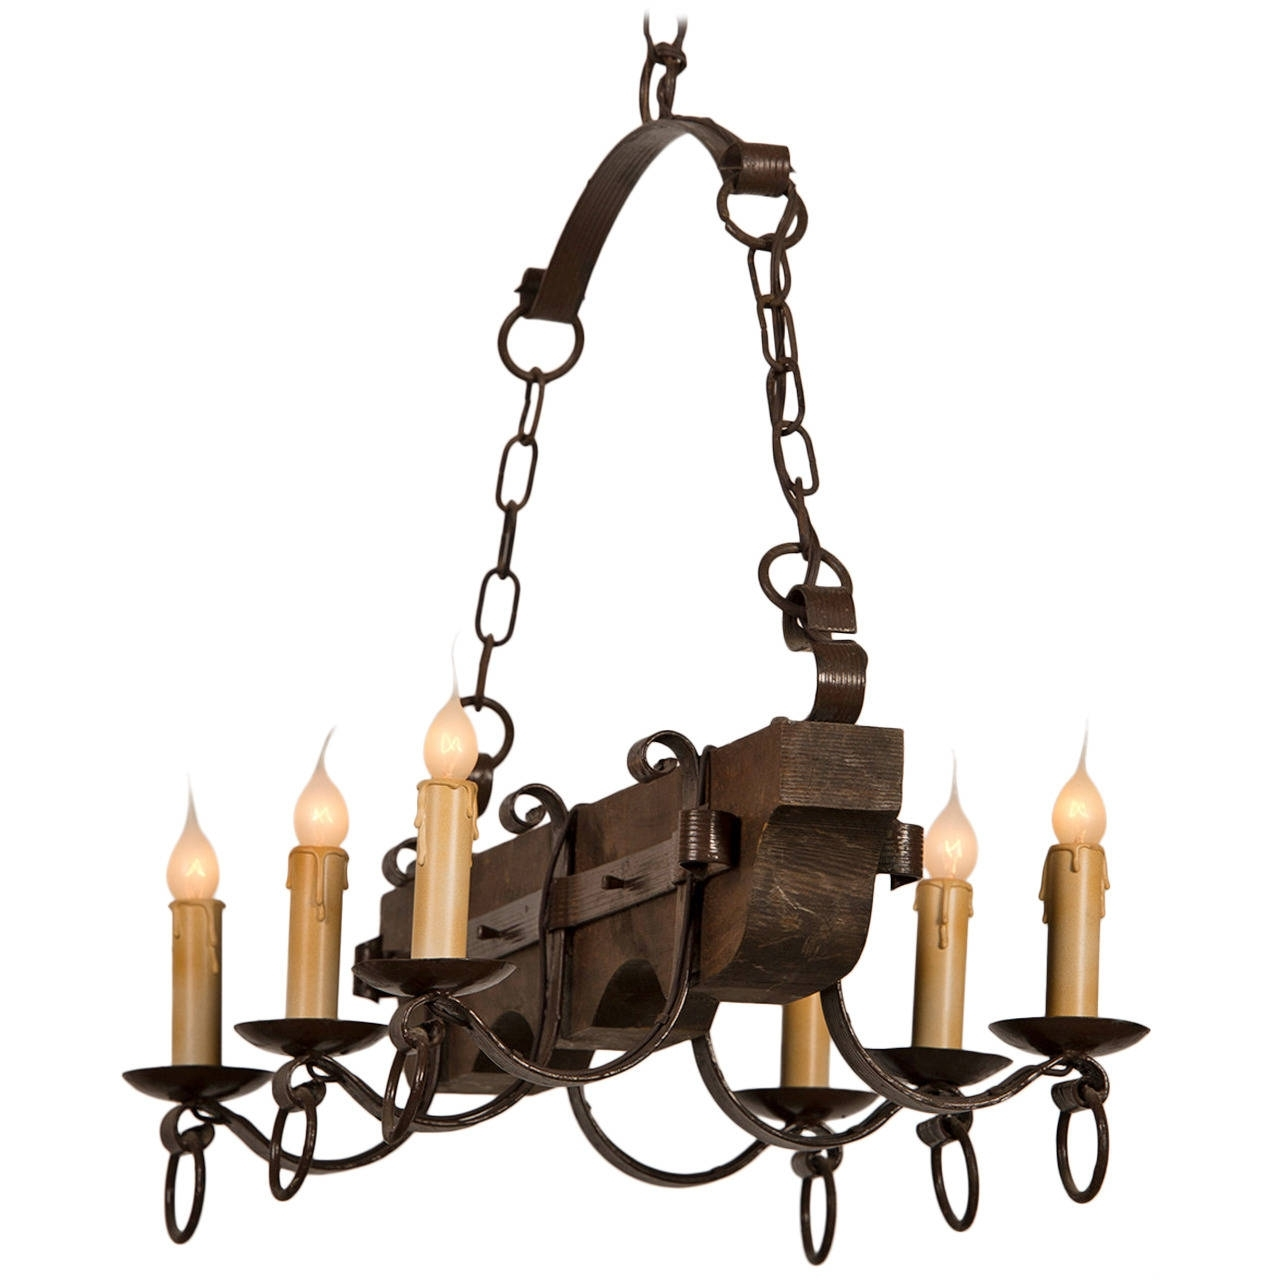 Famous Vintage Wrought Iron Chandelier Throughout Rustic Kitchen Or Dining Room Lighting Ideas With Vertical Wooden (View 5 of 20)